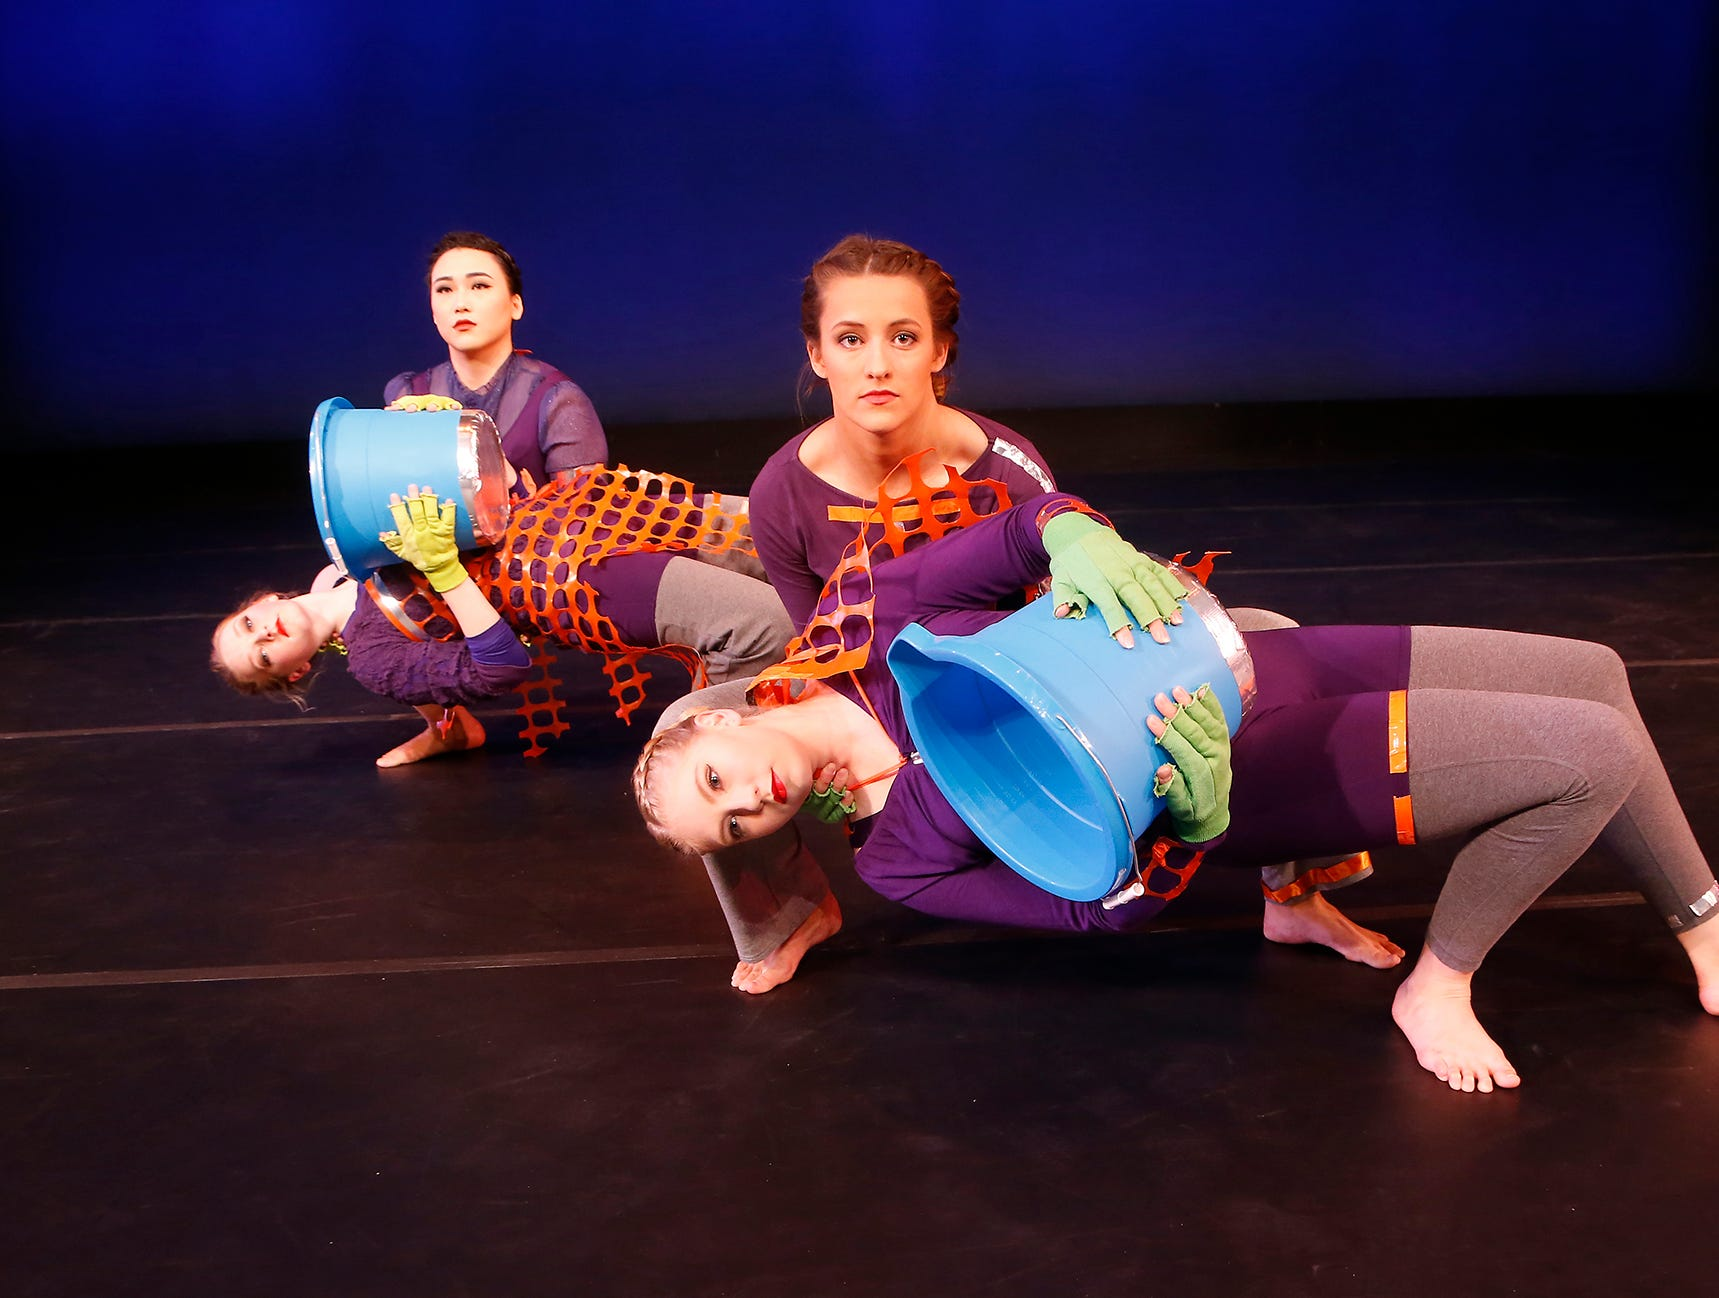 "A dance choreographed by Holly Jaycox titled ""Warriors for the Ordinary"" that is part of Purdue Contemporary Dance Company's Winter Works Concert. ""Warriors of the Ordinary"" features dancers Madison Hinton, Chloe Mills, Frankie Tao and Lane Terry. Performances are Friday, December 7 at 7:30 p.m., and Saturday, December 8 at 2 p.m. and 7:30 p.m. in Nancy Hansen Theatre in Pao Hall on the campus of Purdue University."